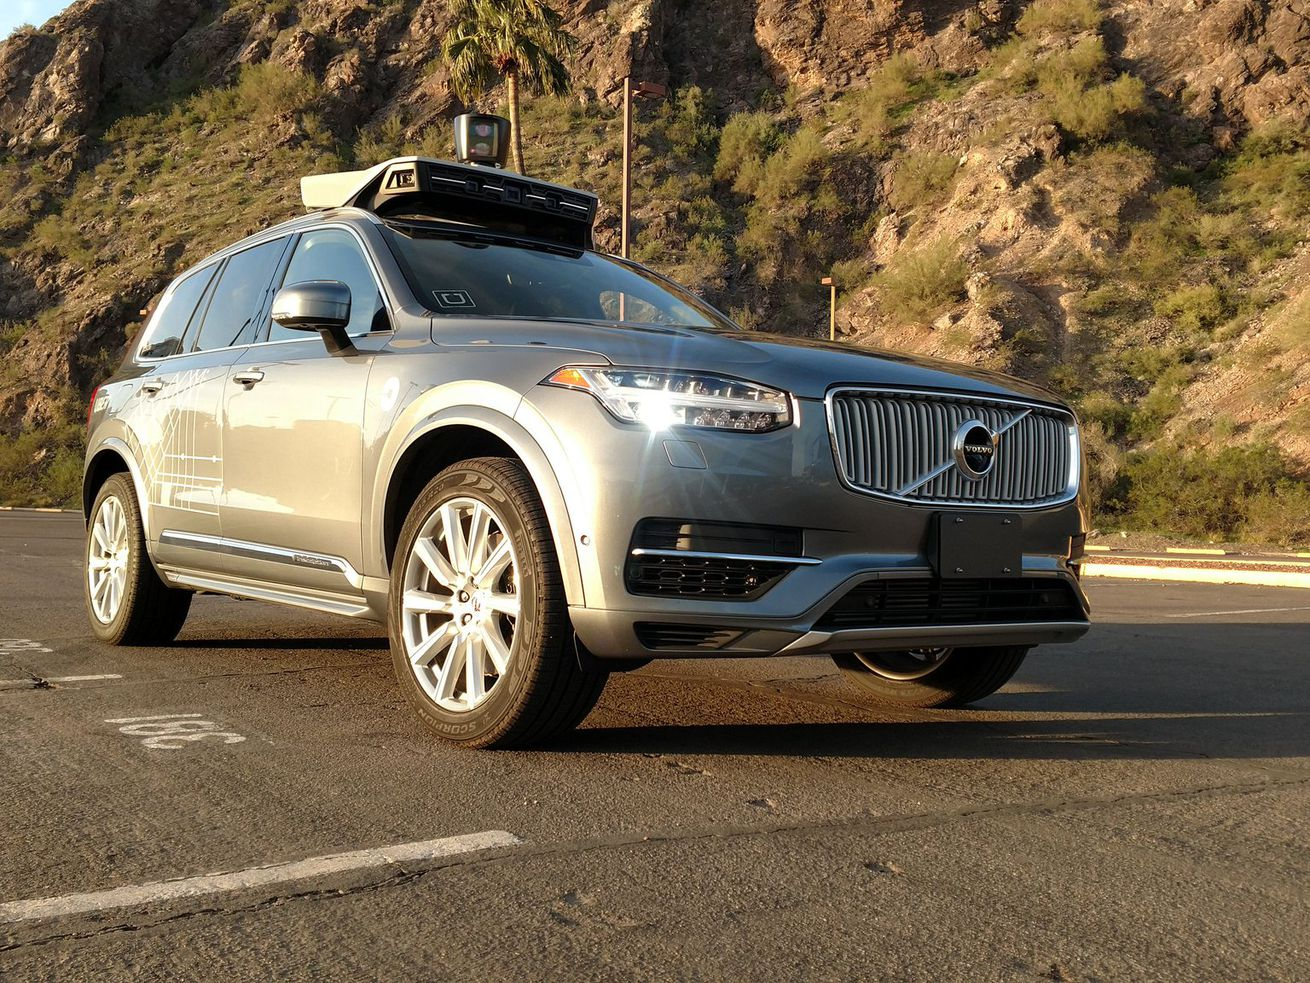 An SUV, distracted driving, victim blaming, and flawed infrastructure—Uber's fatal crash was not a self-driving anomaly.